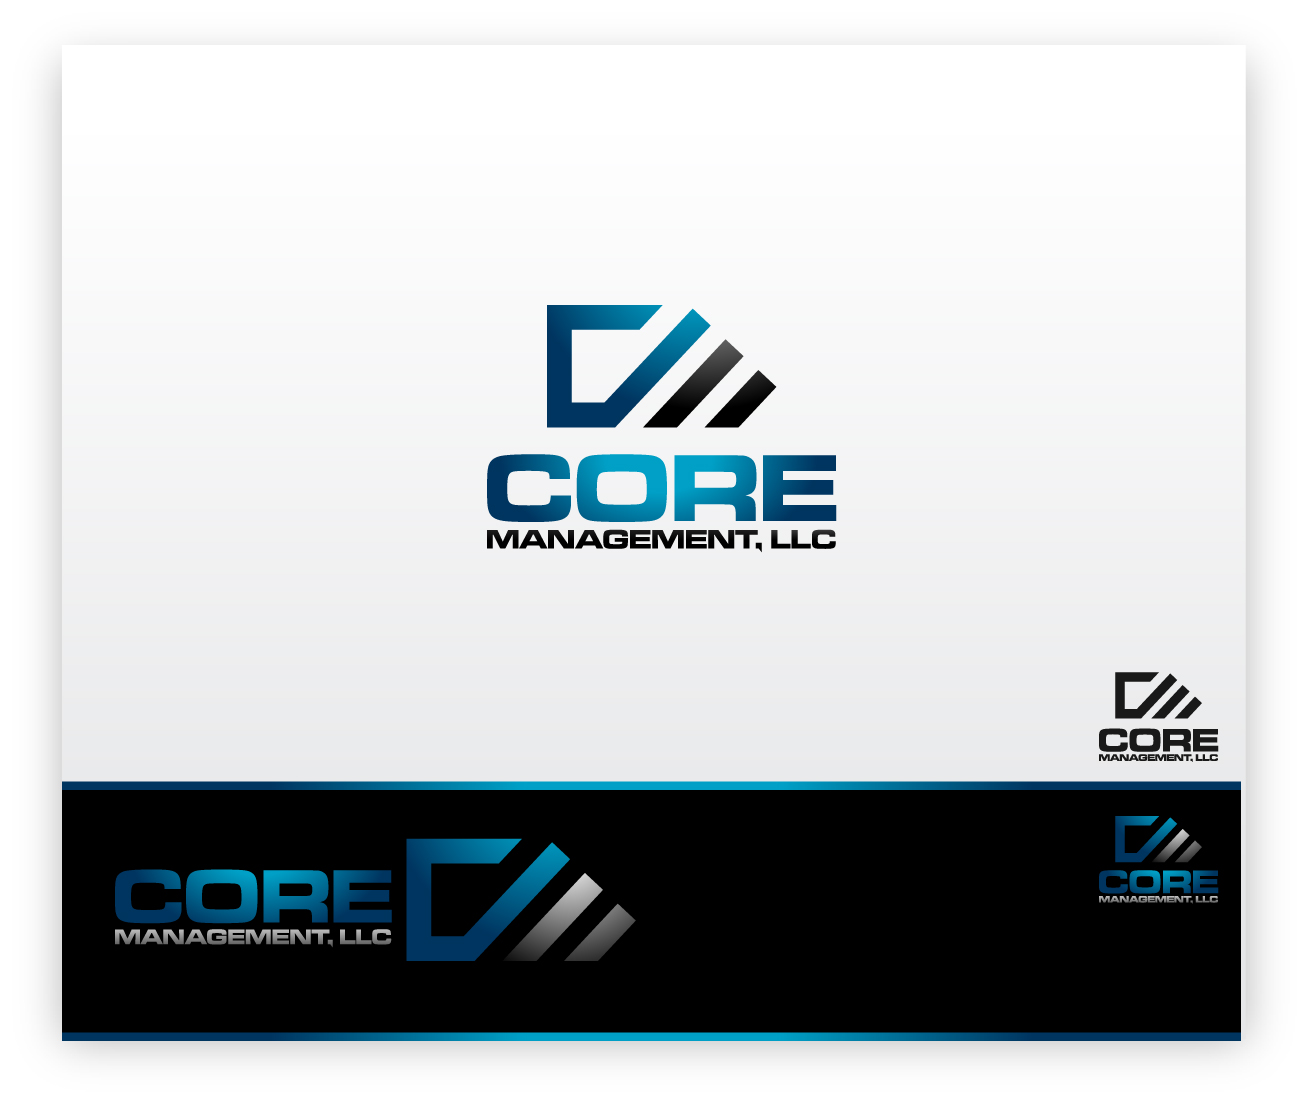 Logo Design by zoiDesign - Entry No. 144 in the Logo Design Contest Creative Logo Design for CORE Management, LLC.